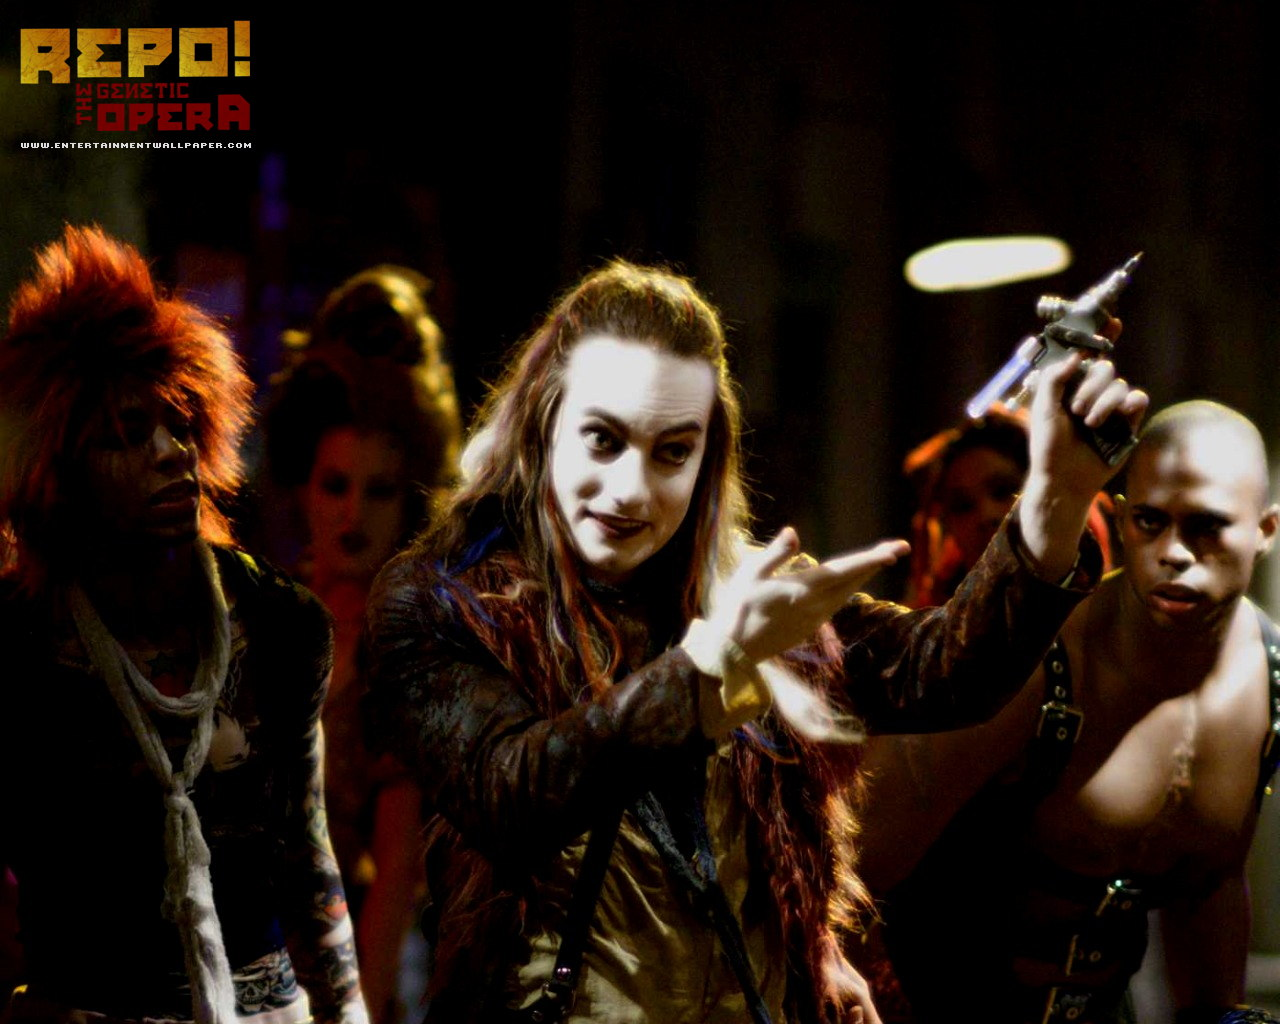 Images Repo! The Genetic Opera film Movies